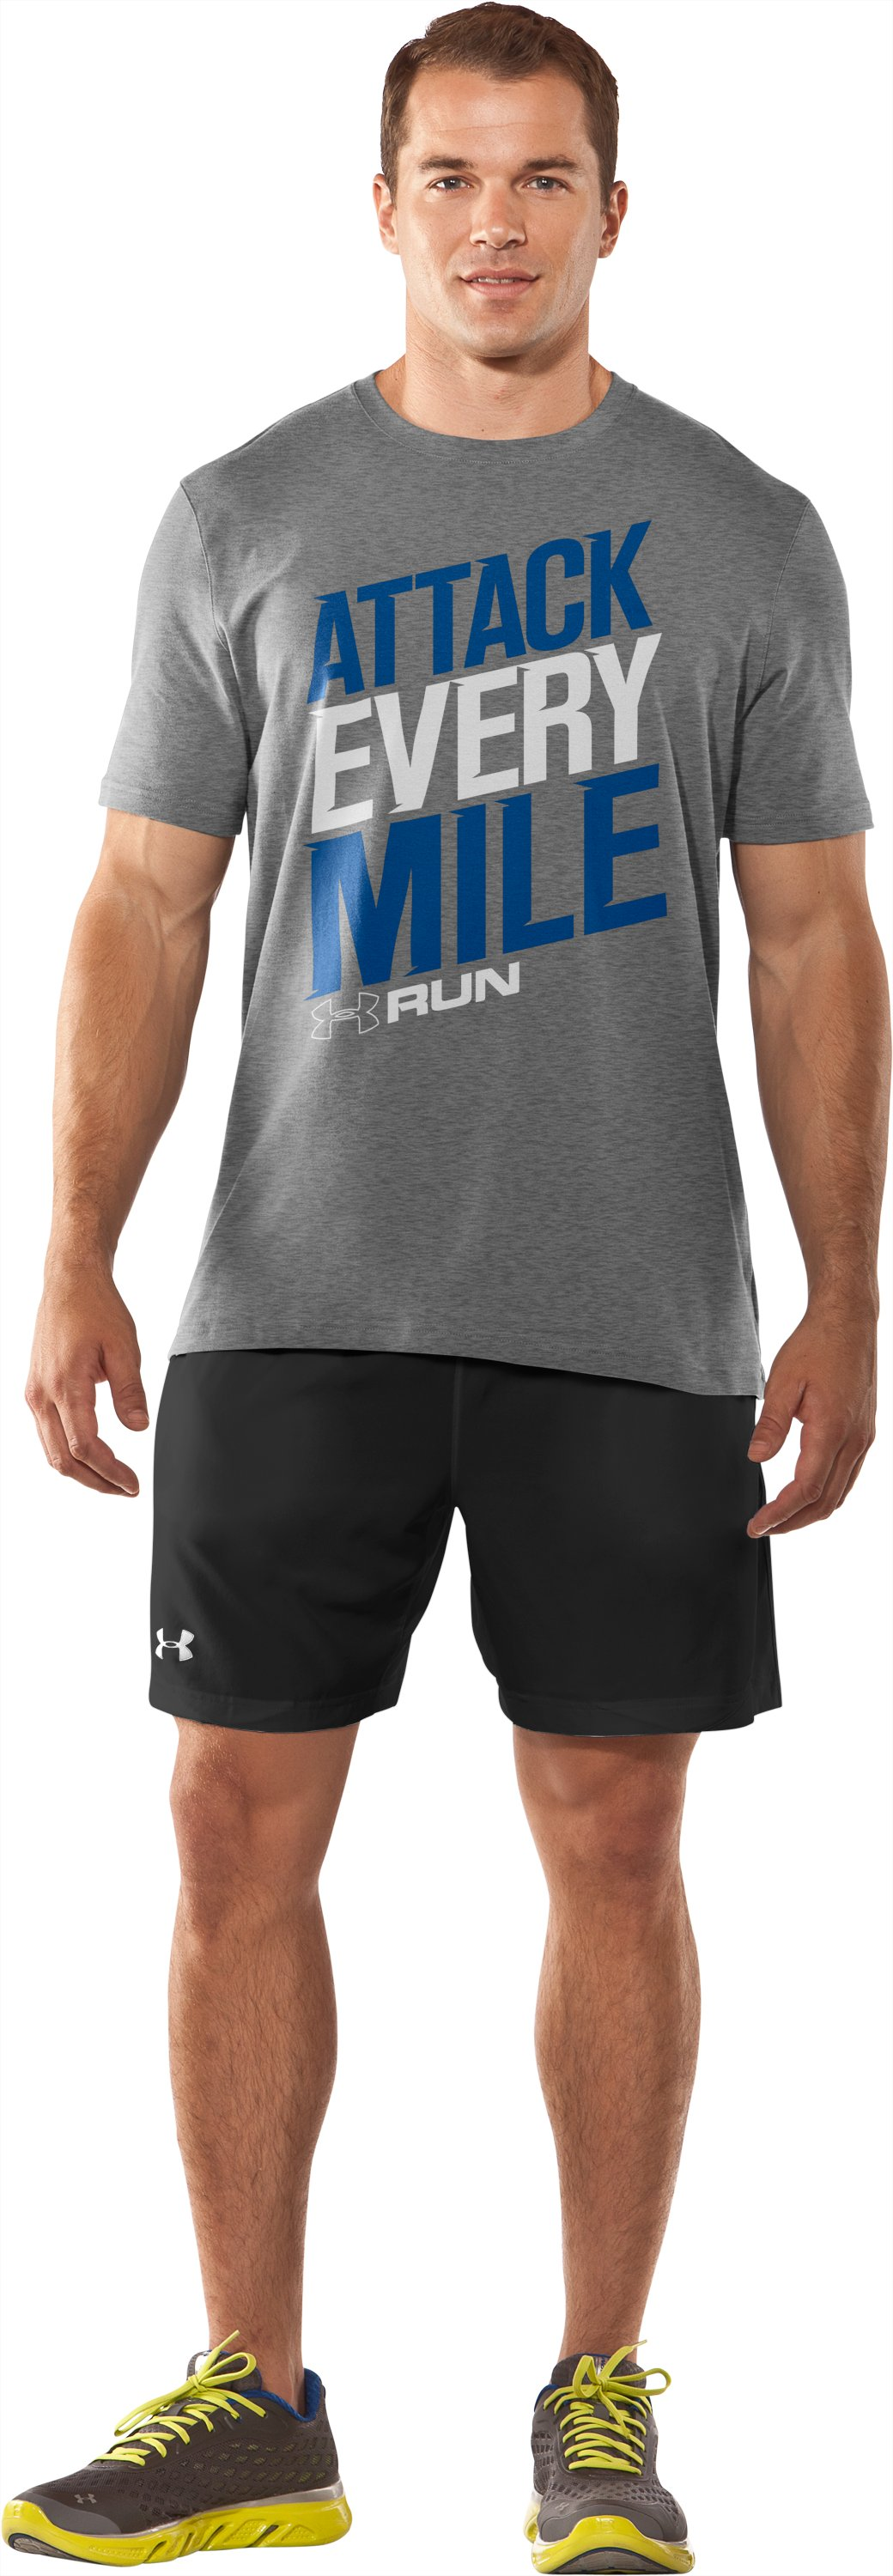 Men's UA Attack Every Mile T-Shirt, True Gray Heather, Front